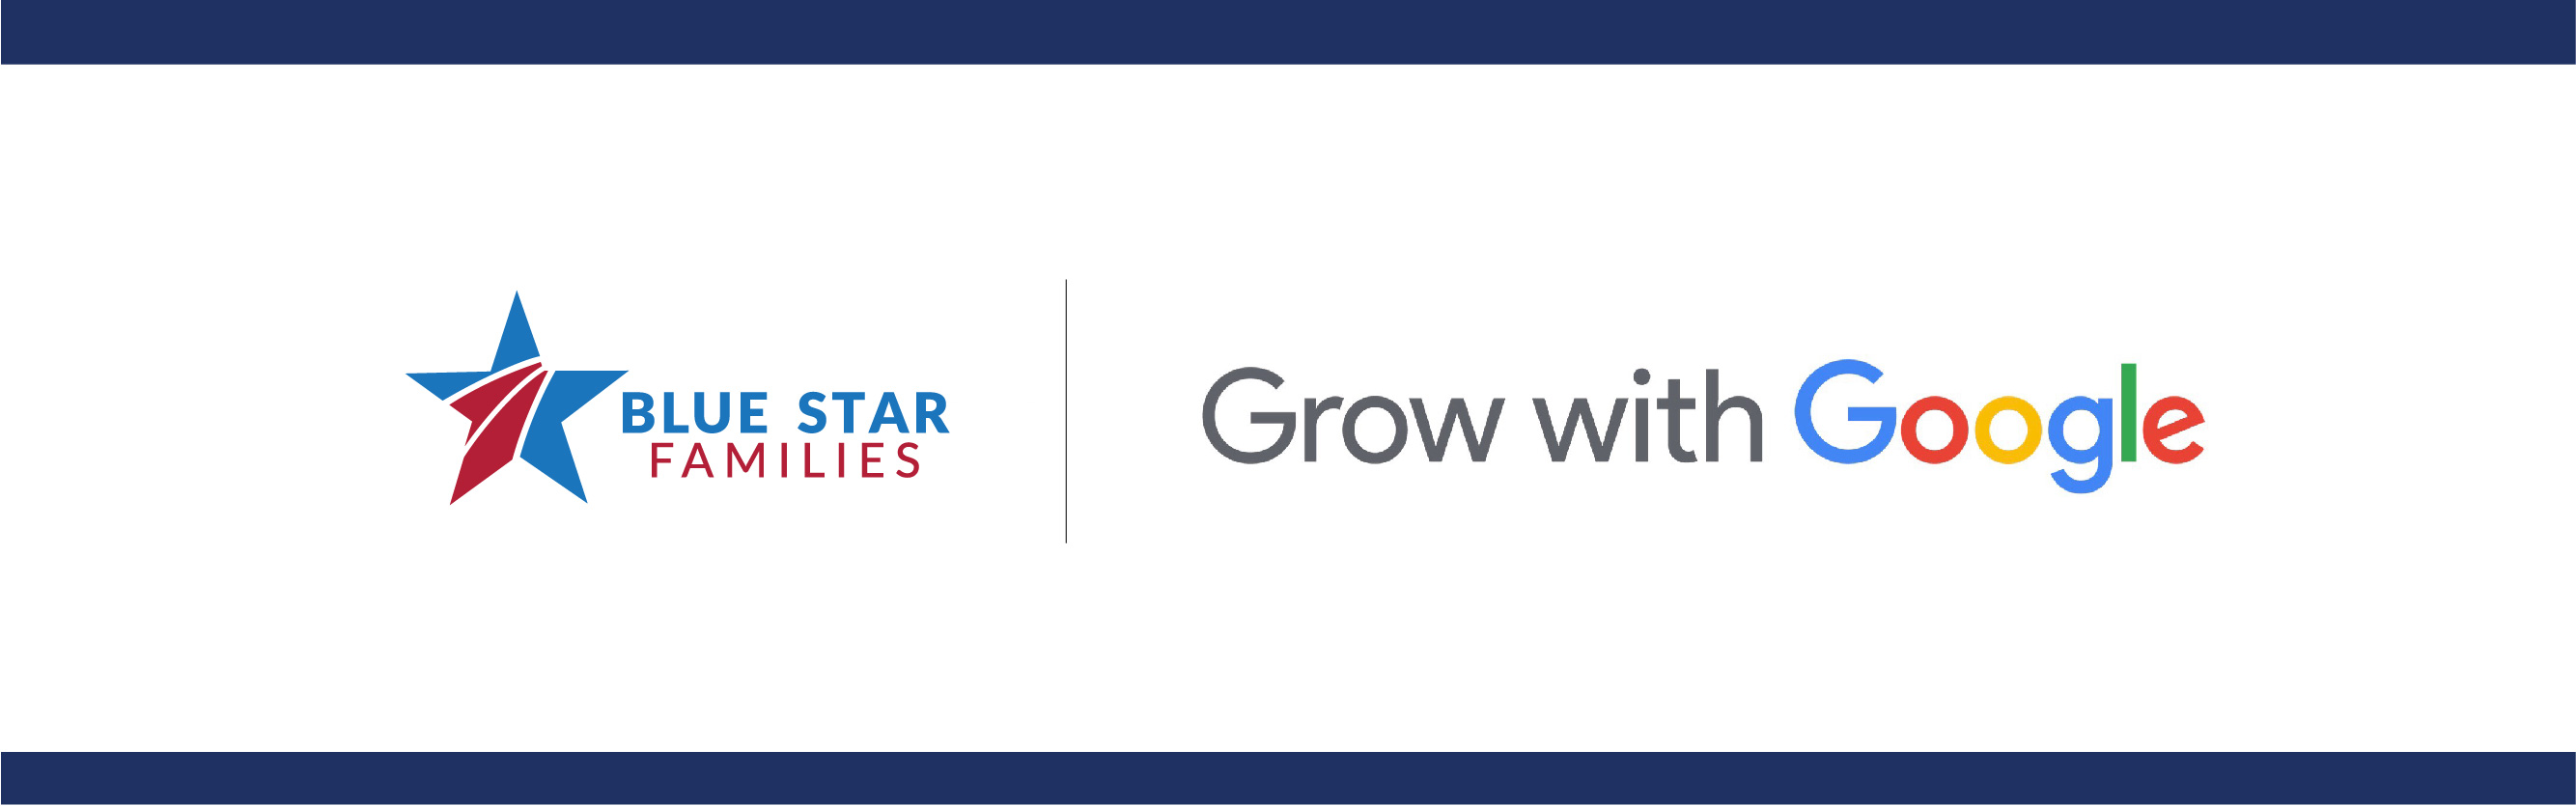 Grow with Google and Blue Star Families logo